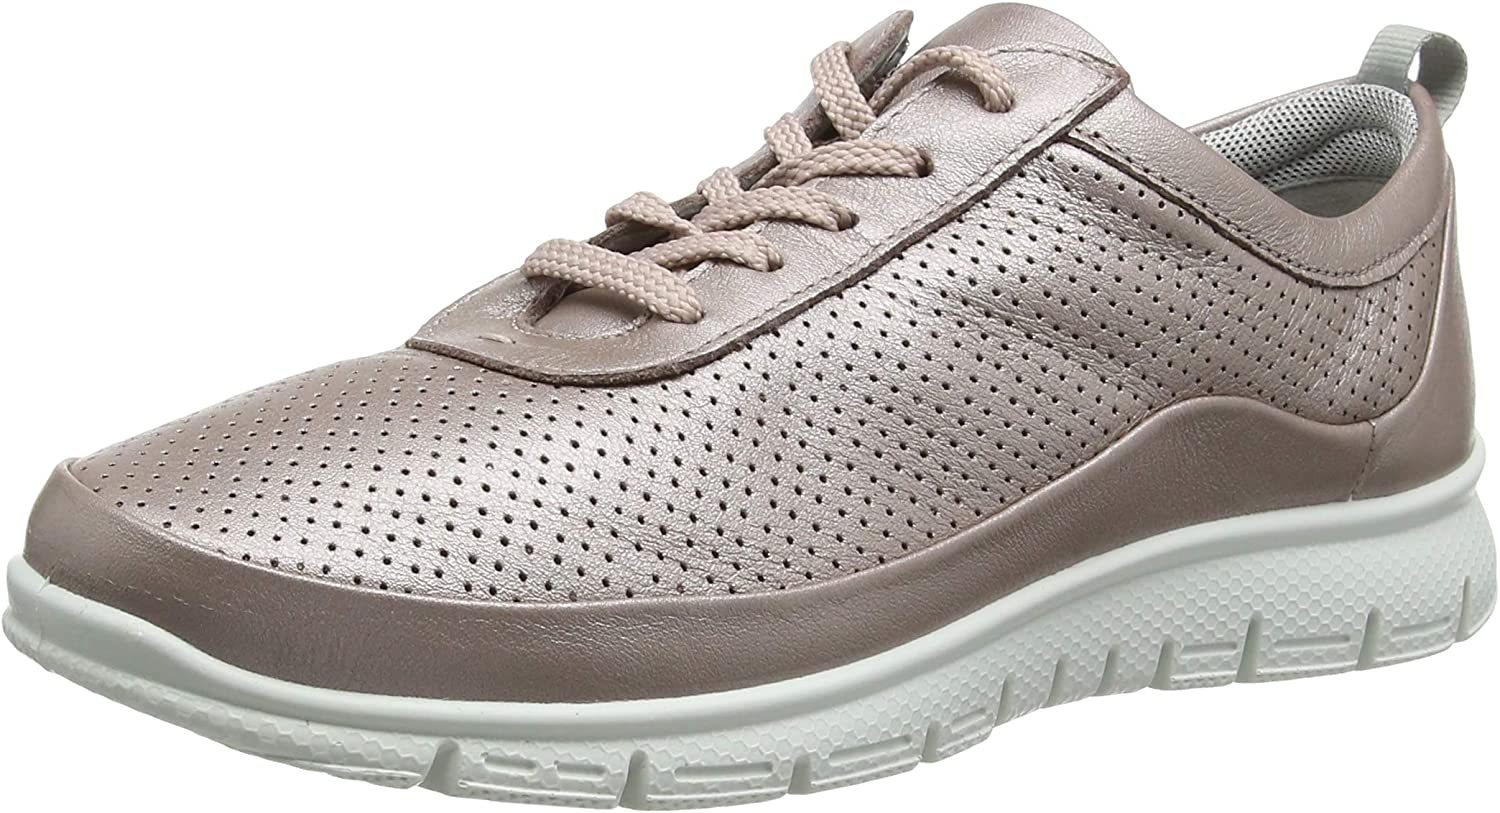 Hotter Women's Gravity Trainers